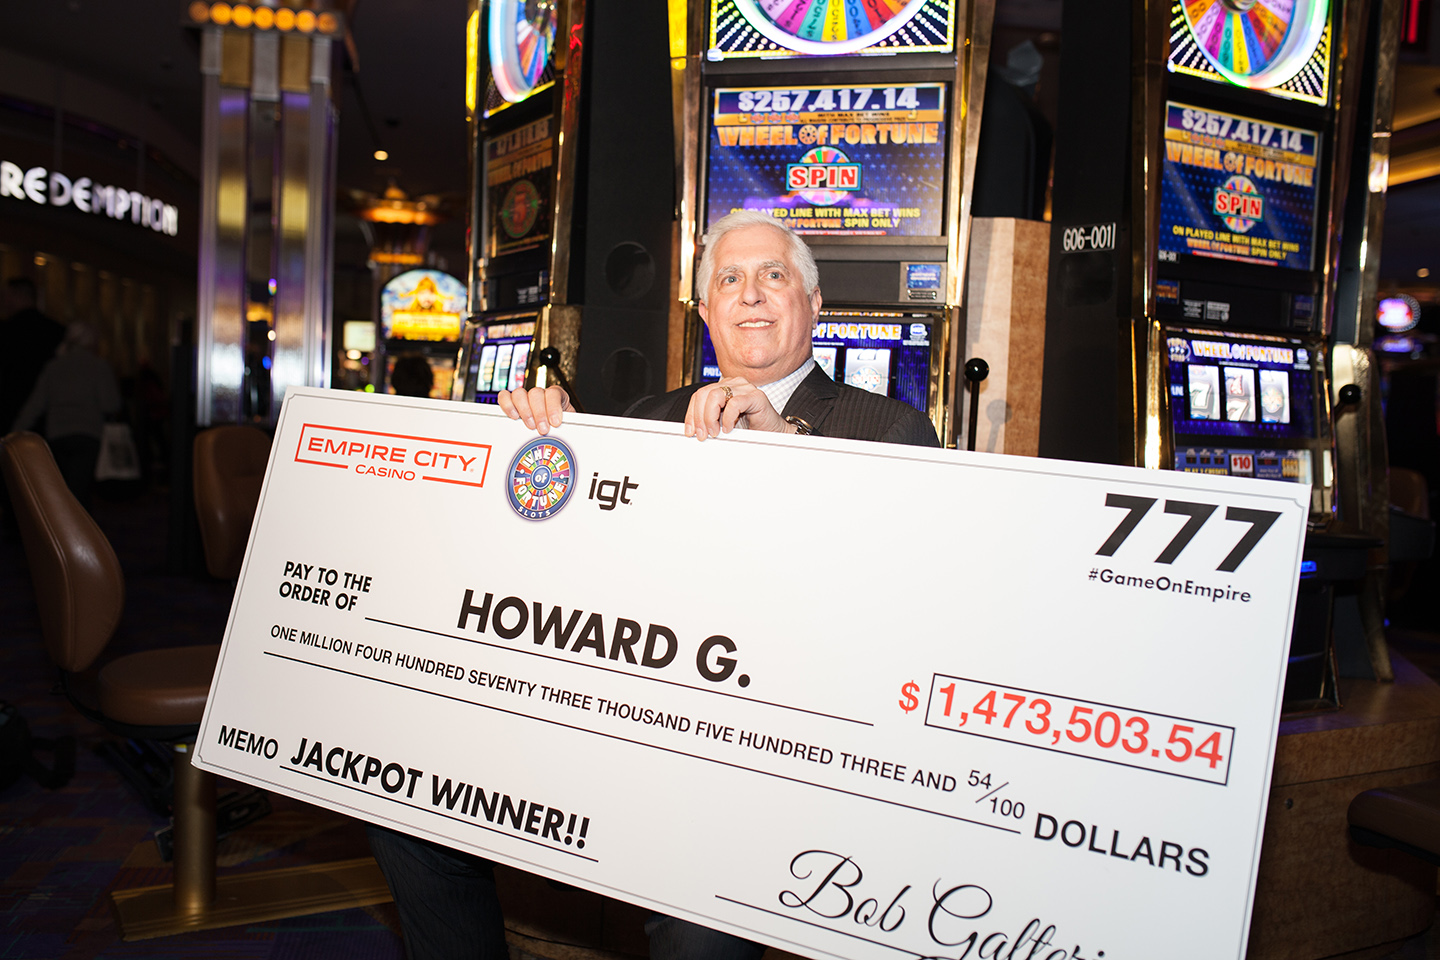 Howard G. Jackpot with Check